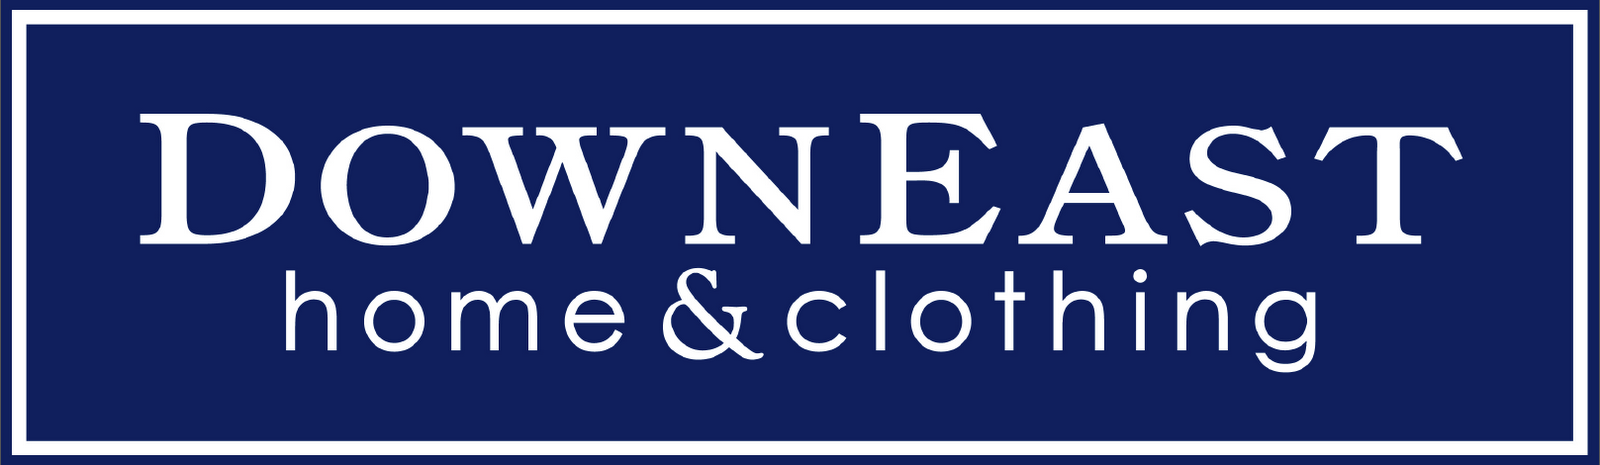 Downeast Home Clothing Accent Furniture From Around The World